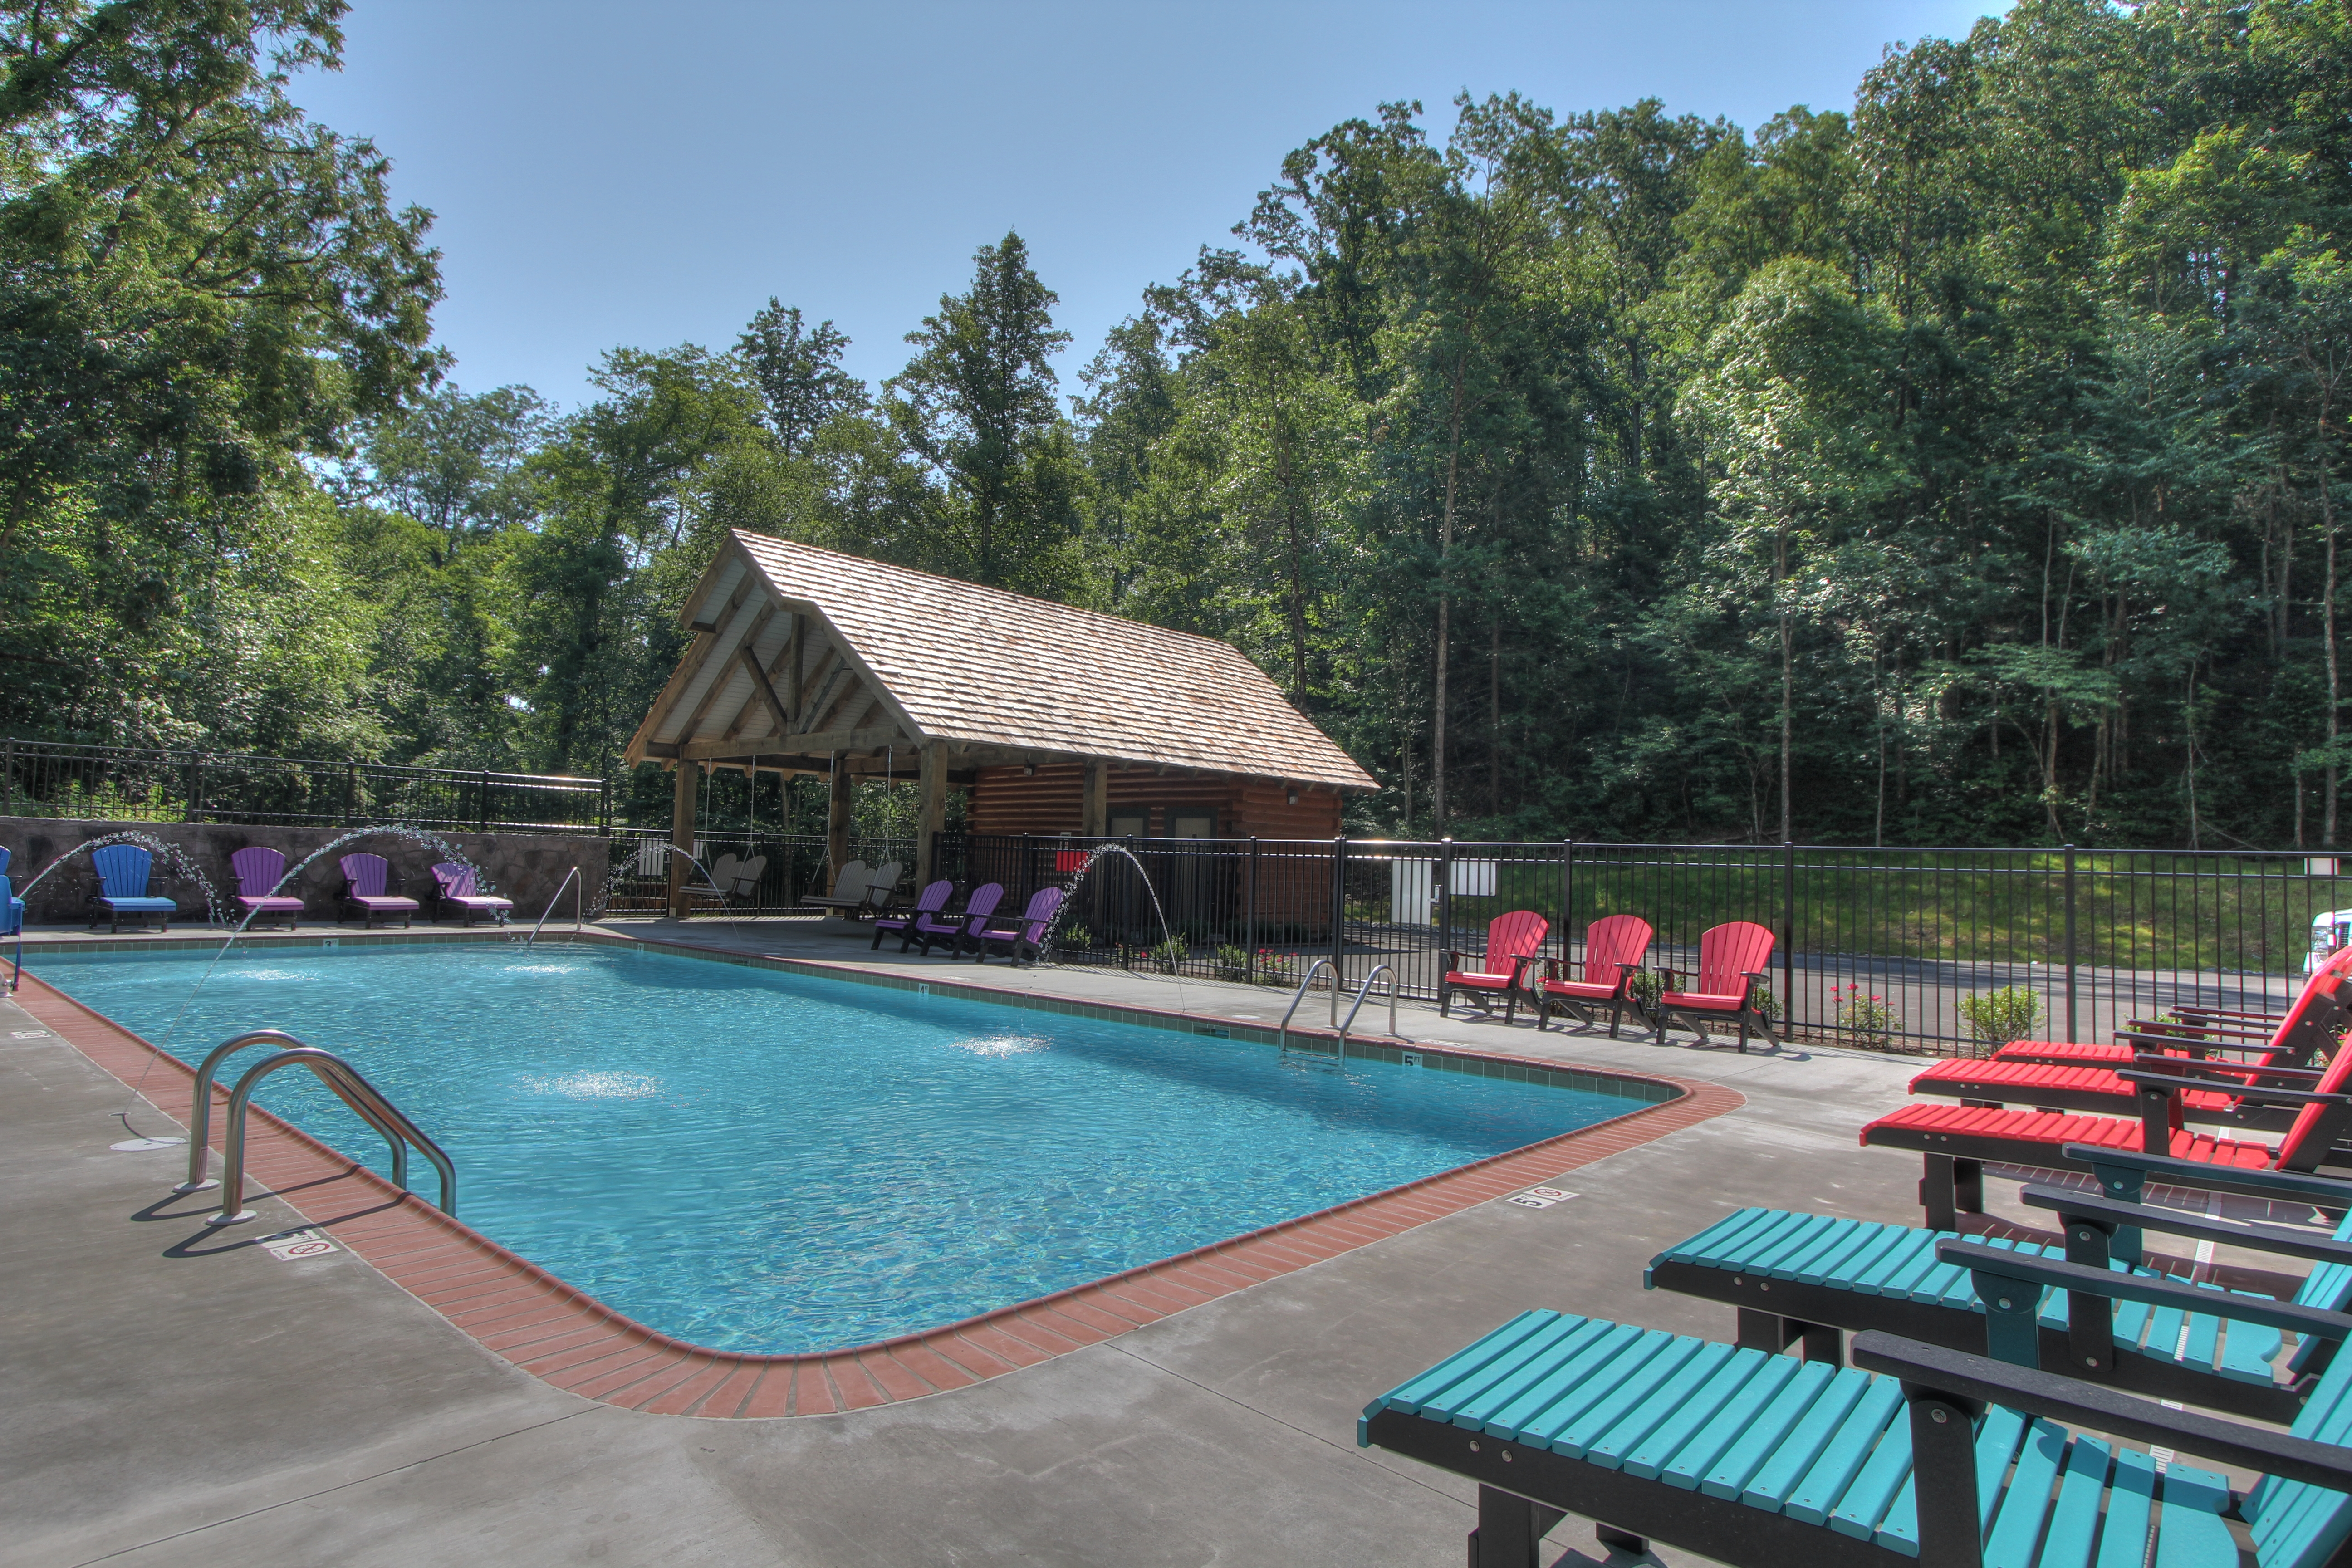 near lodging cabins dccor dorble large pigeon specil plce pet dollywood indoor vction luxury friendly pool getwy with forge nd secluded tn bedroom in